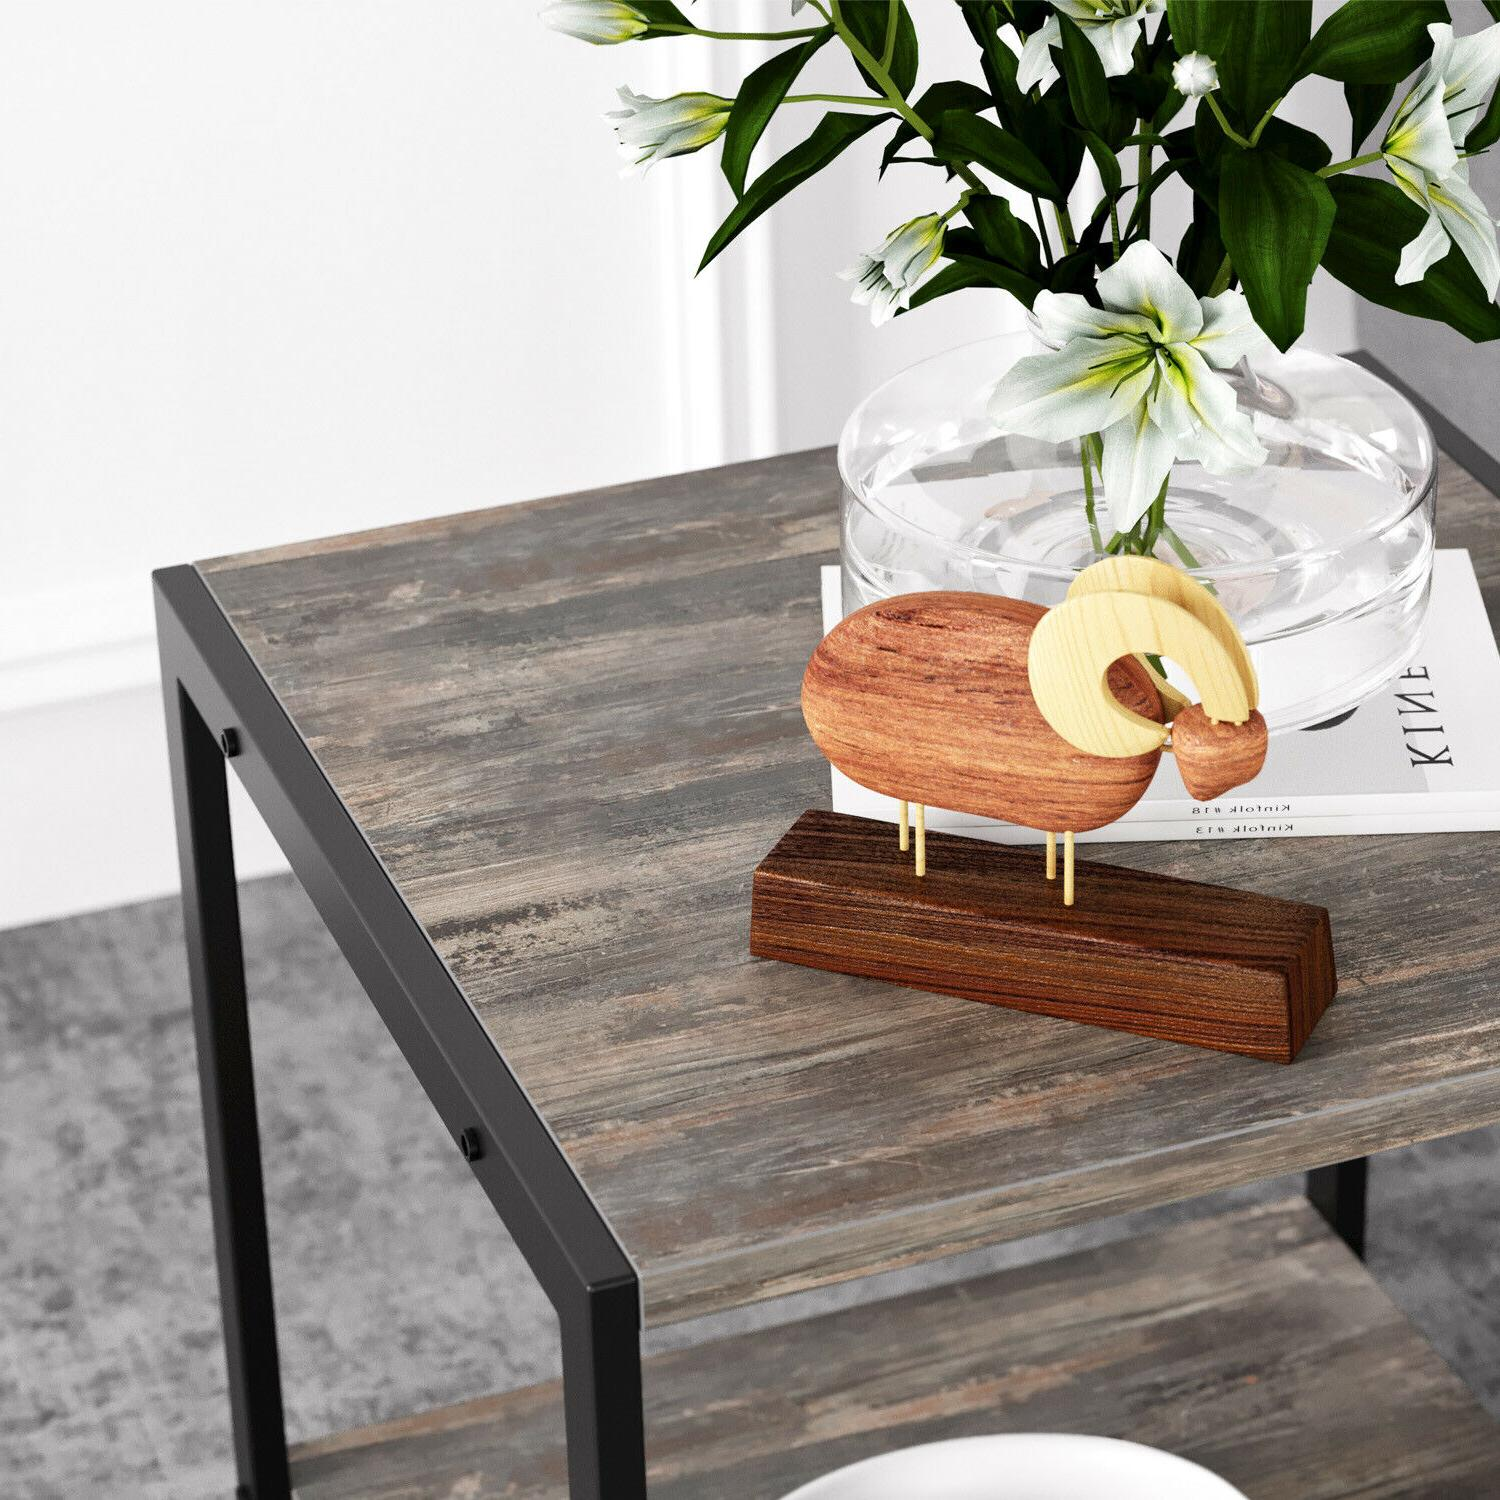 IRONCK 2-Tier End Table, Stand Side Table